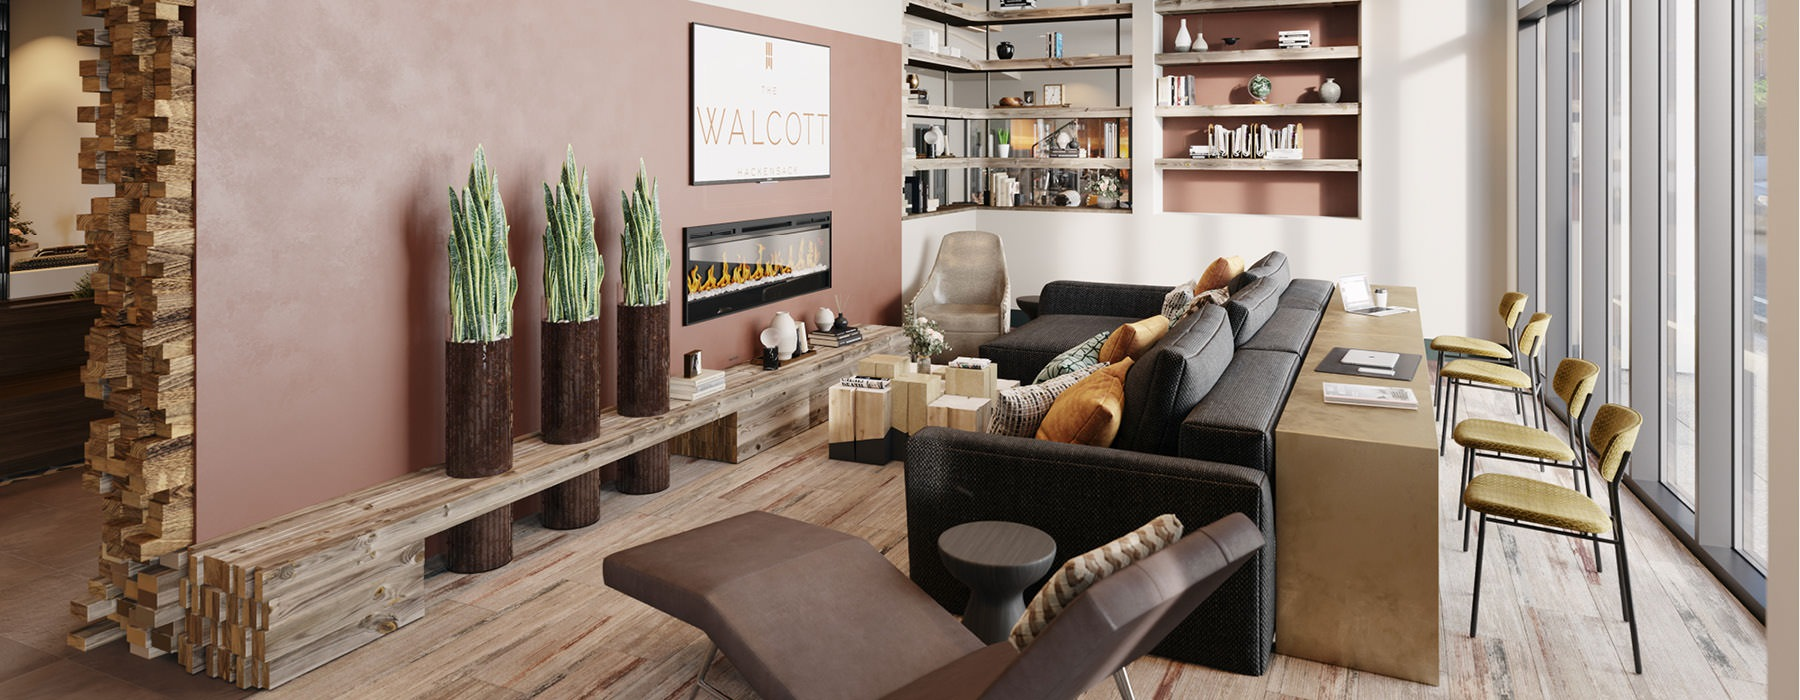 well lit clubroom sitting area in front of fire place